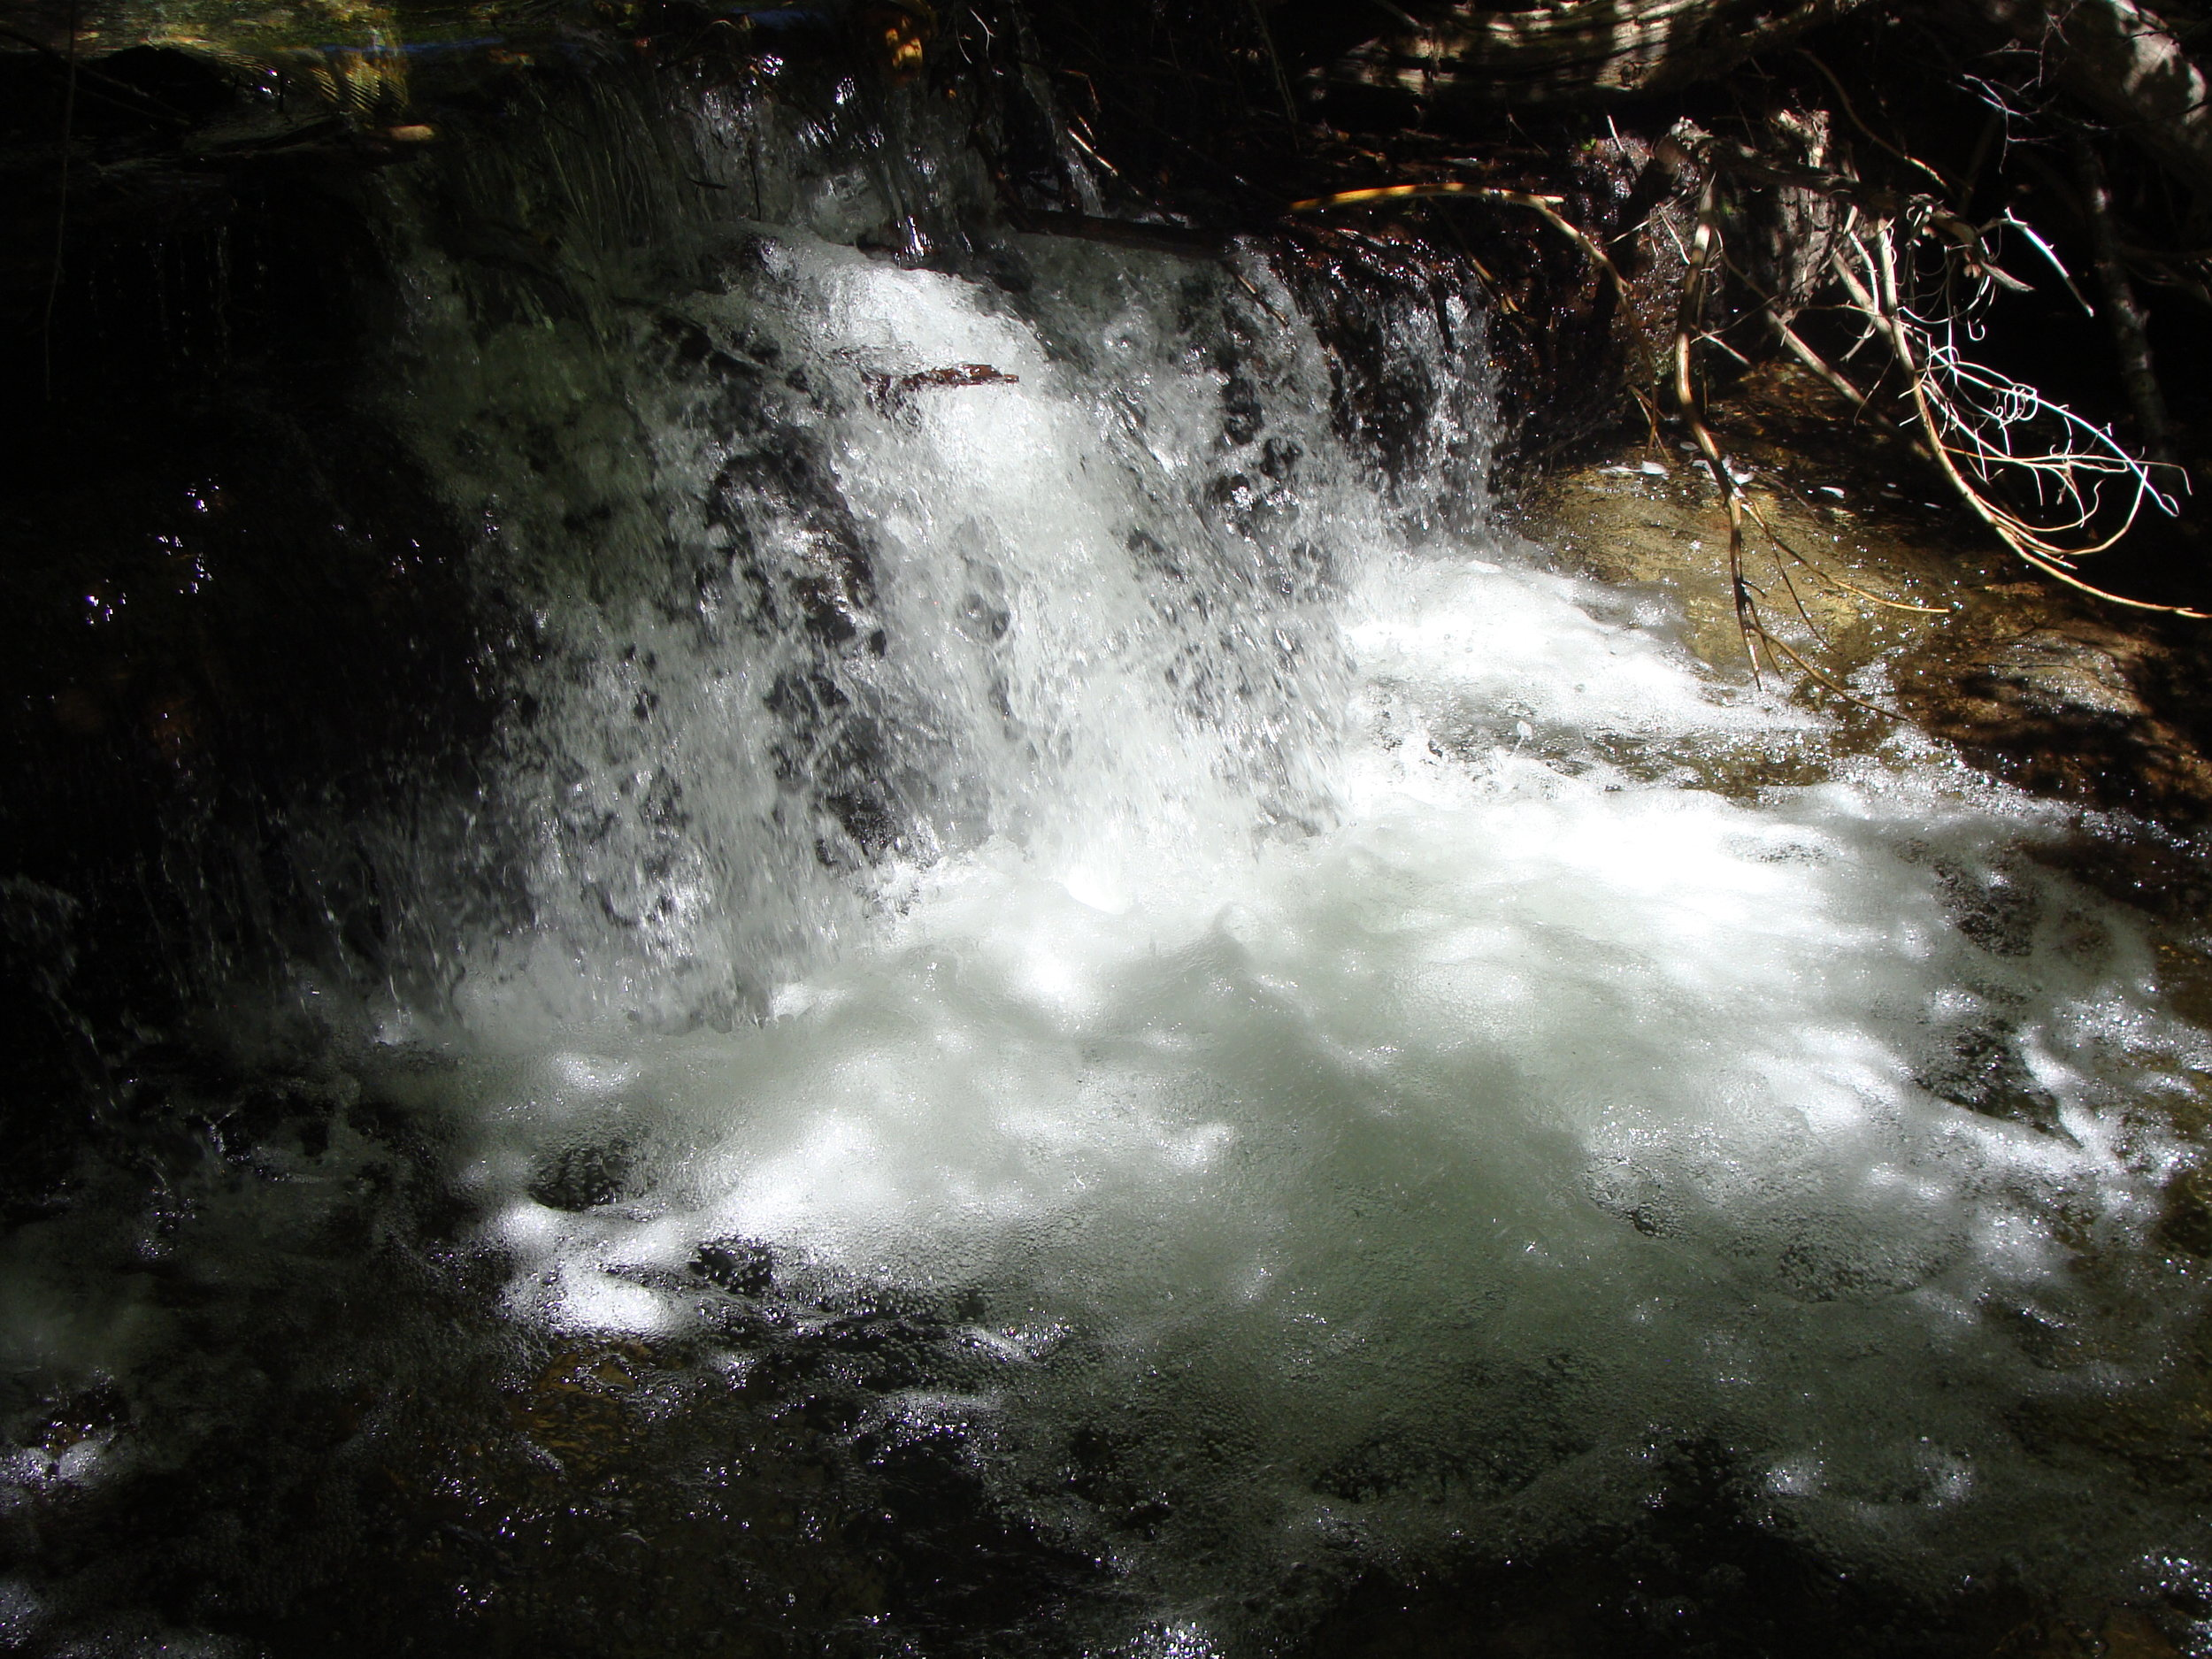 Waterfall on Cottonwood Creek - The Flow of Life